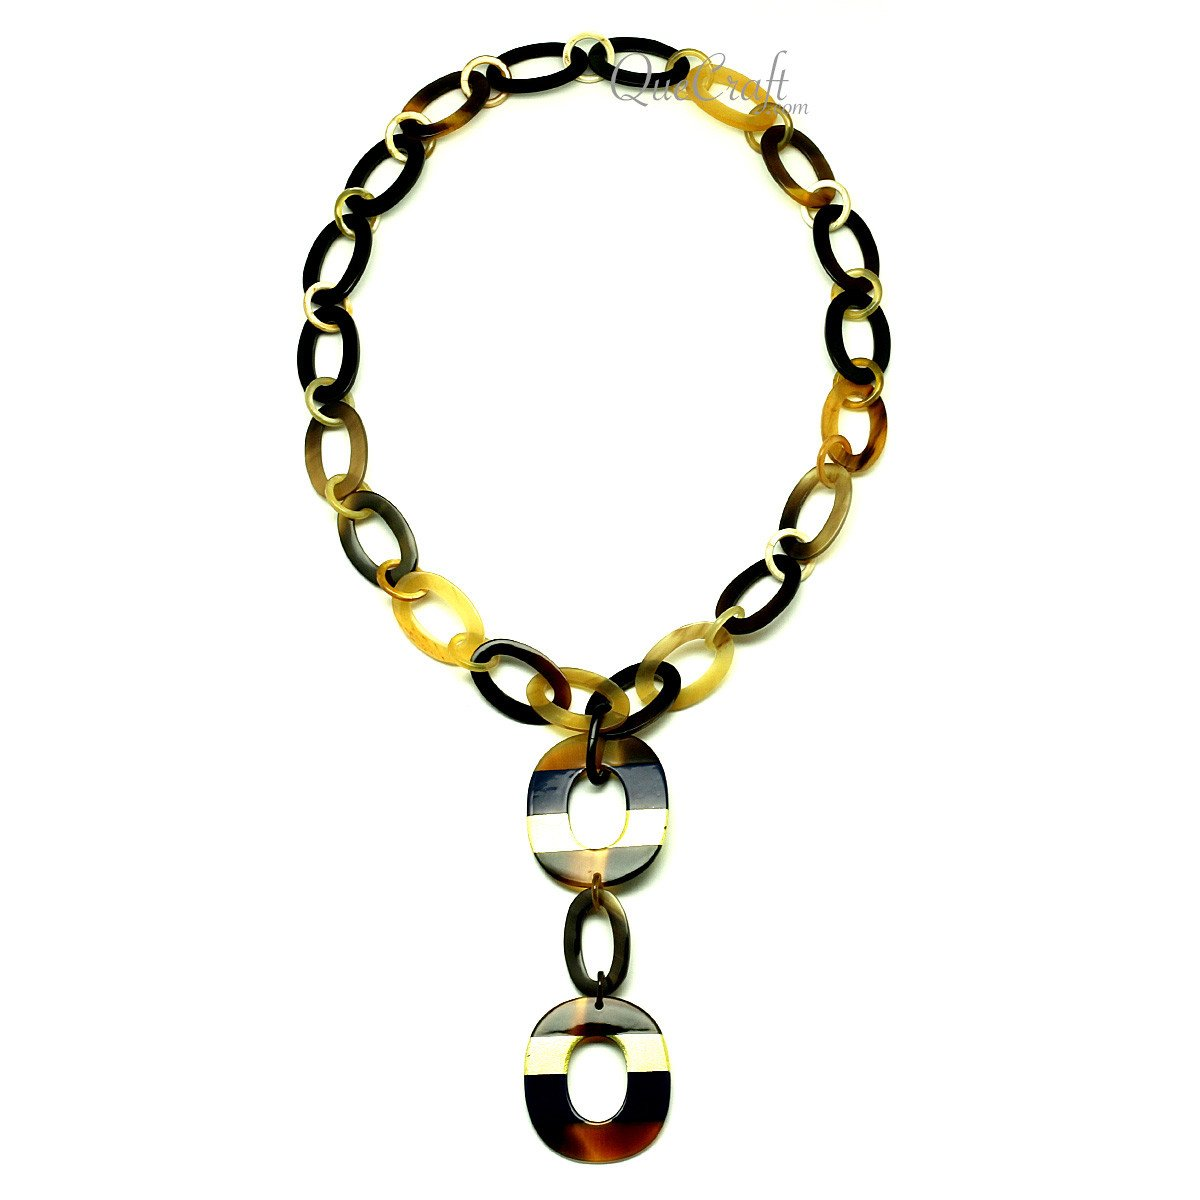 Horn & Lacquer Chain Necklace #12815 - HORN.JEWELRY by QueCraft